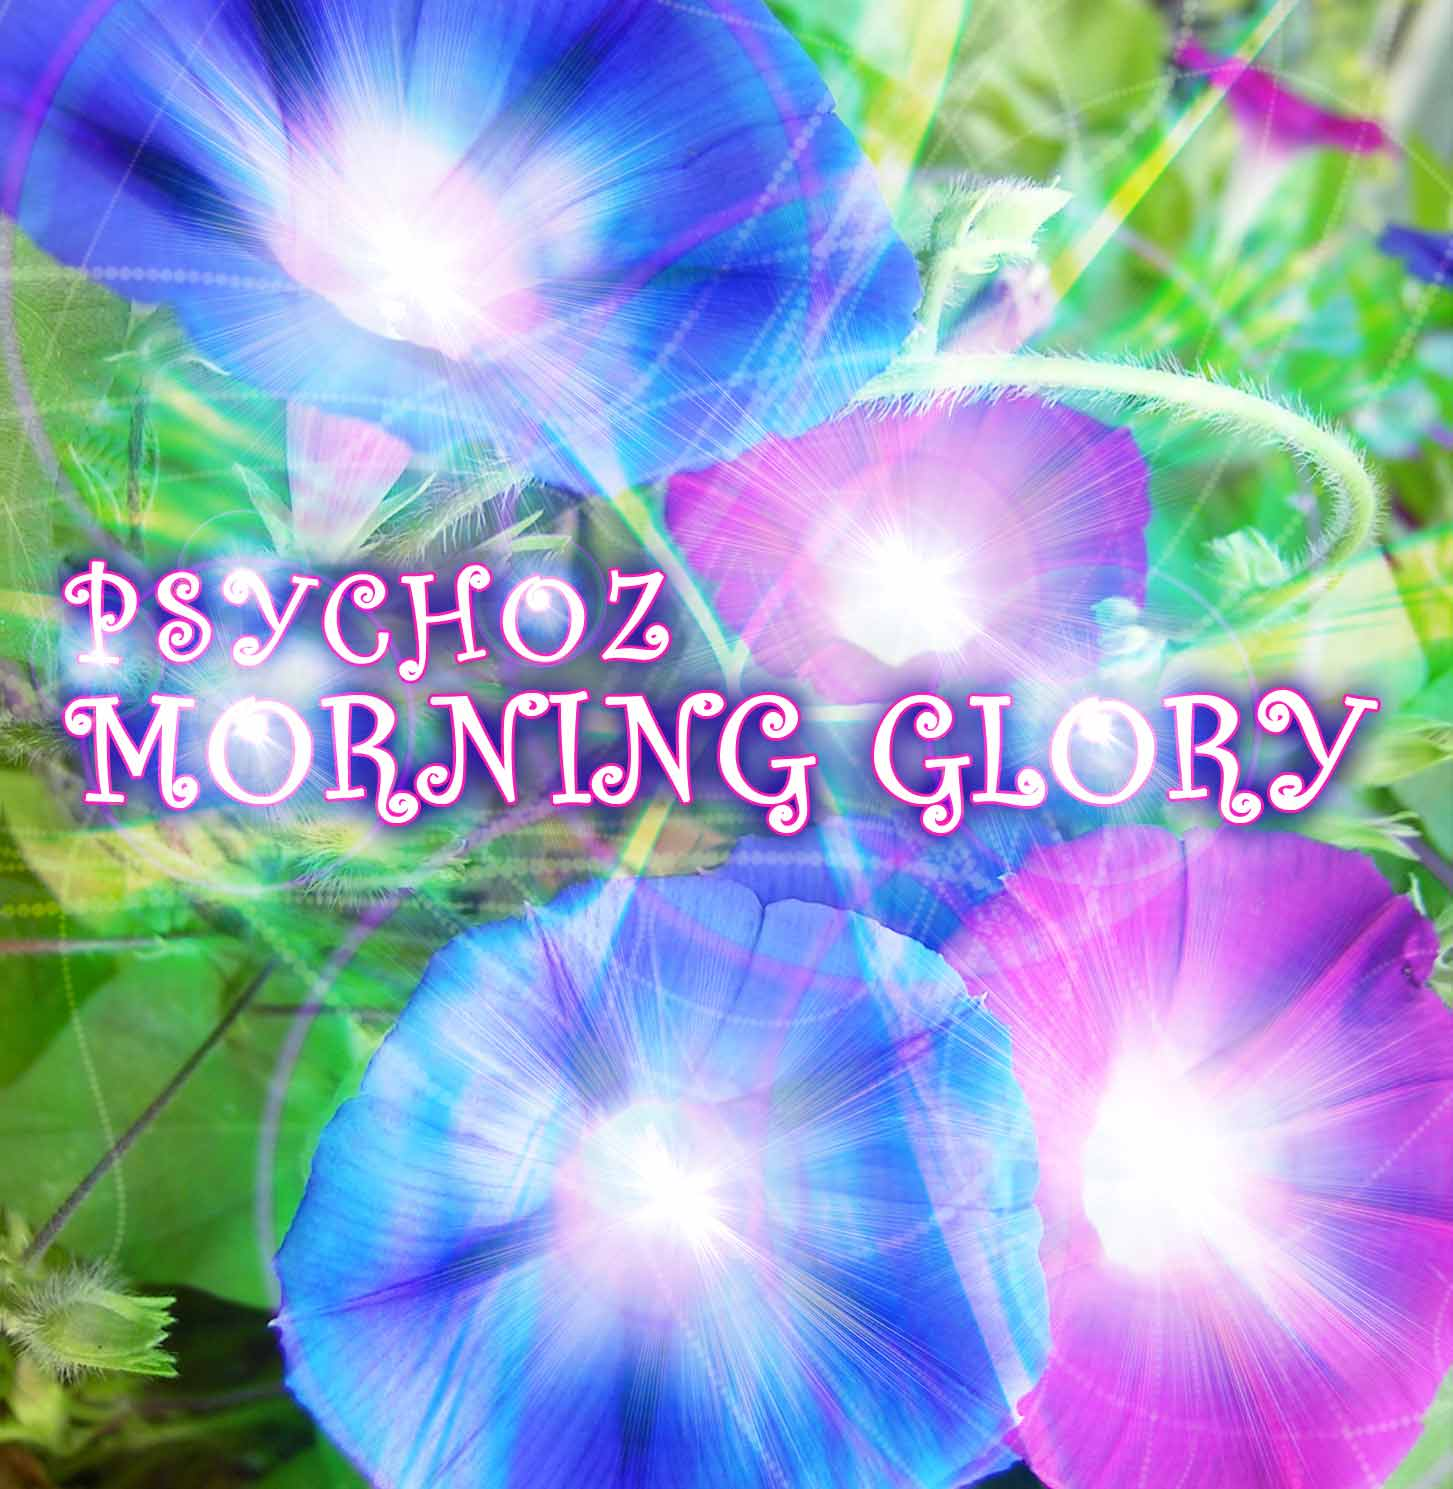 GeoMagnetic.TV | RELEASES | Psychoz - Morning Glory